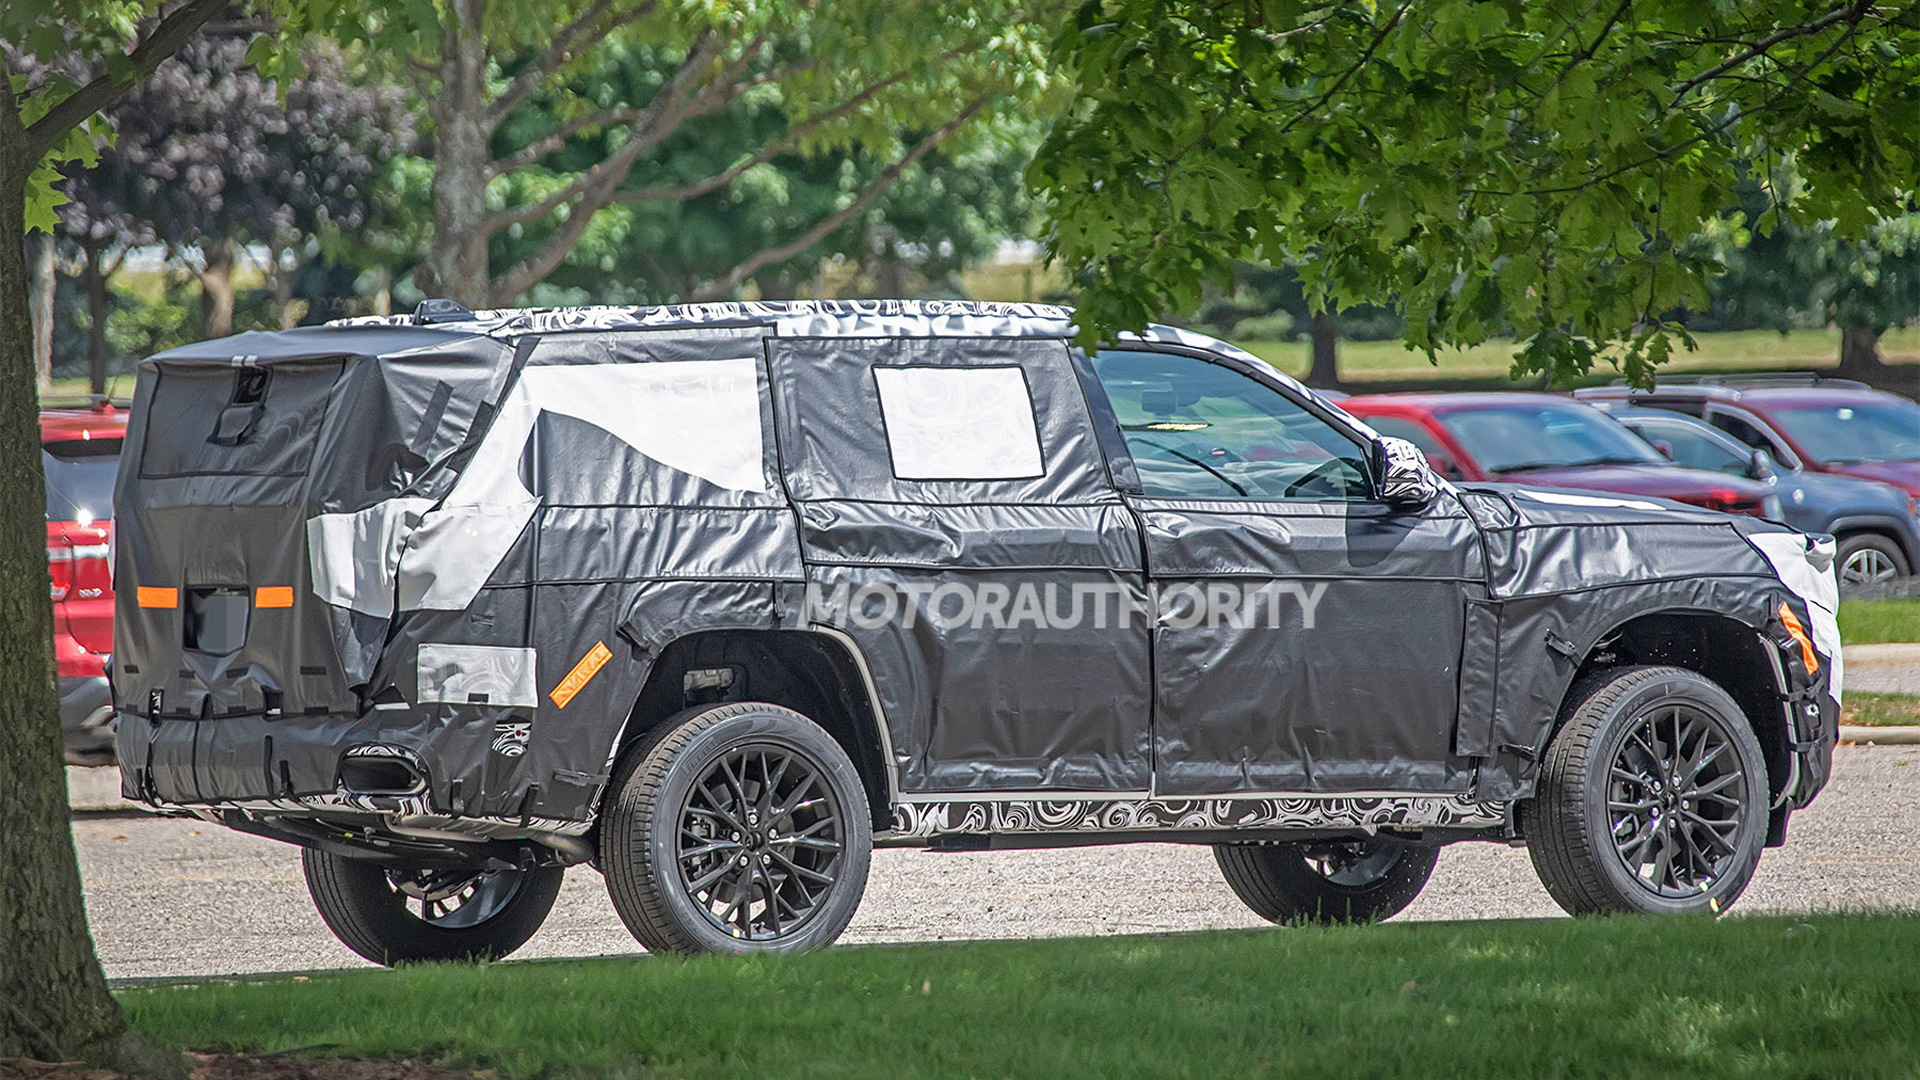 2022 Jeep Grand Cherokee-based 3-row SUV spy shots - Photo credit: S. Baldauf/SB-Medien